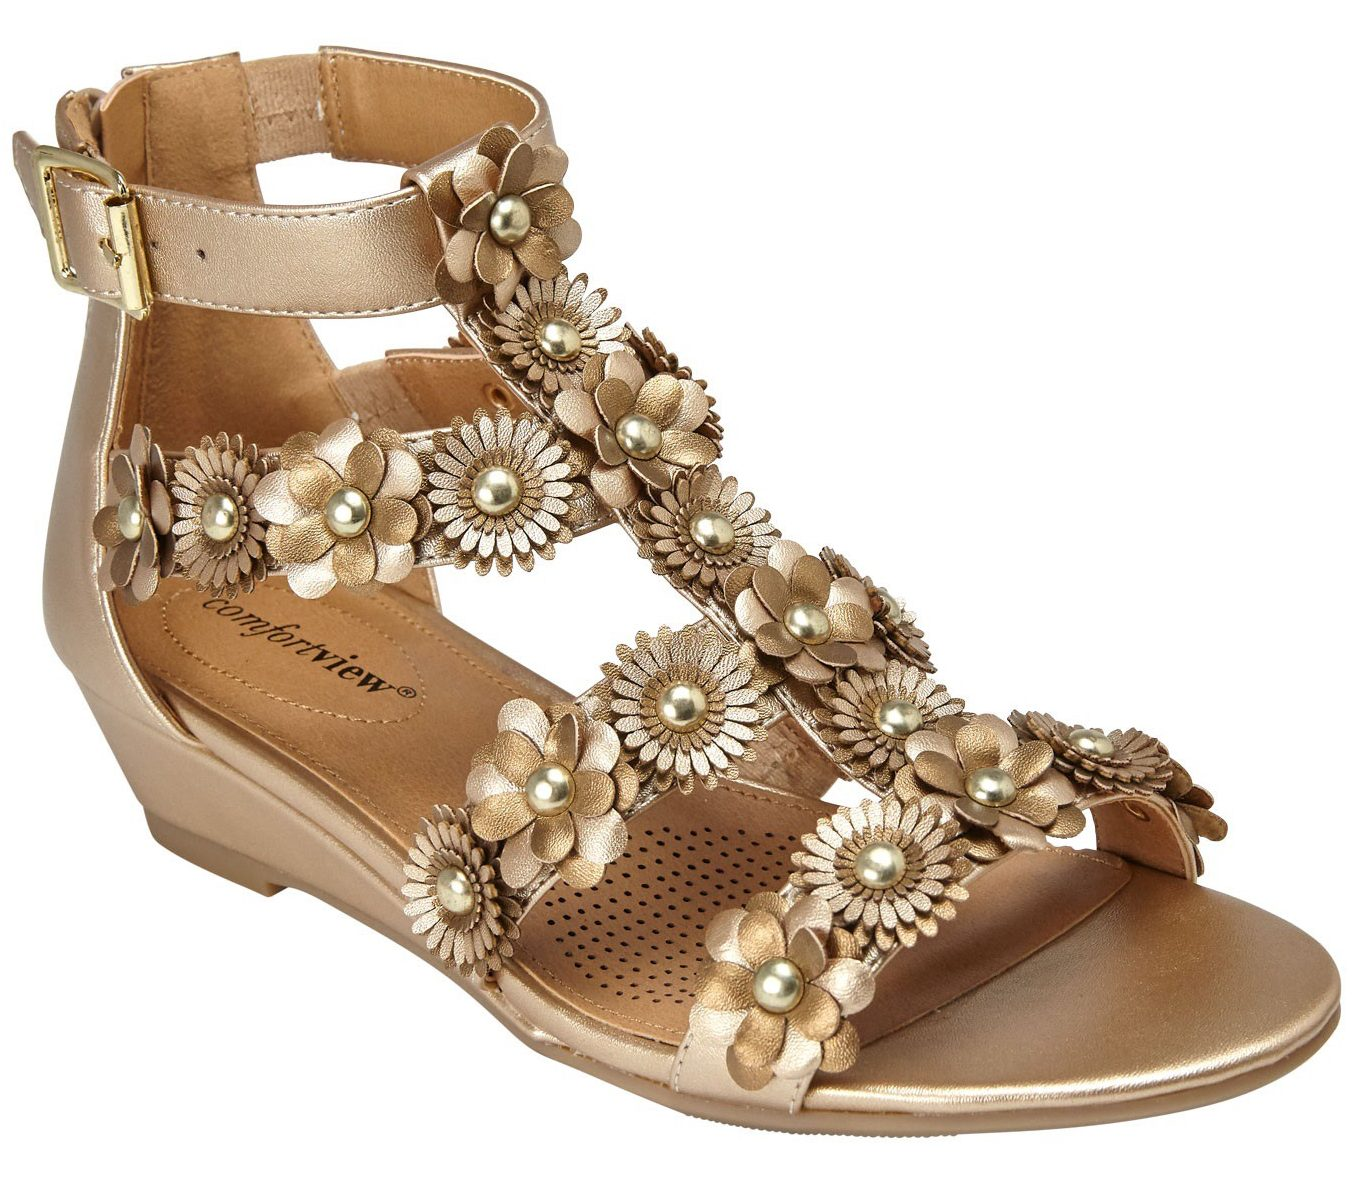 Spring fashion trends that afo wearers who have CMT or MS can wear